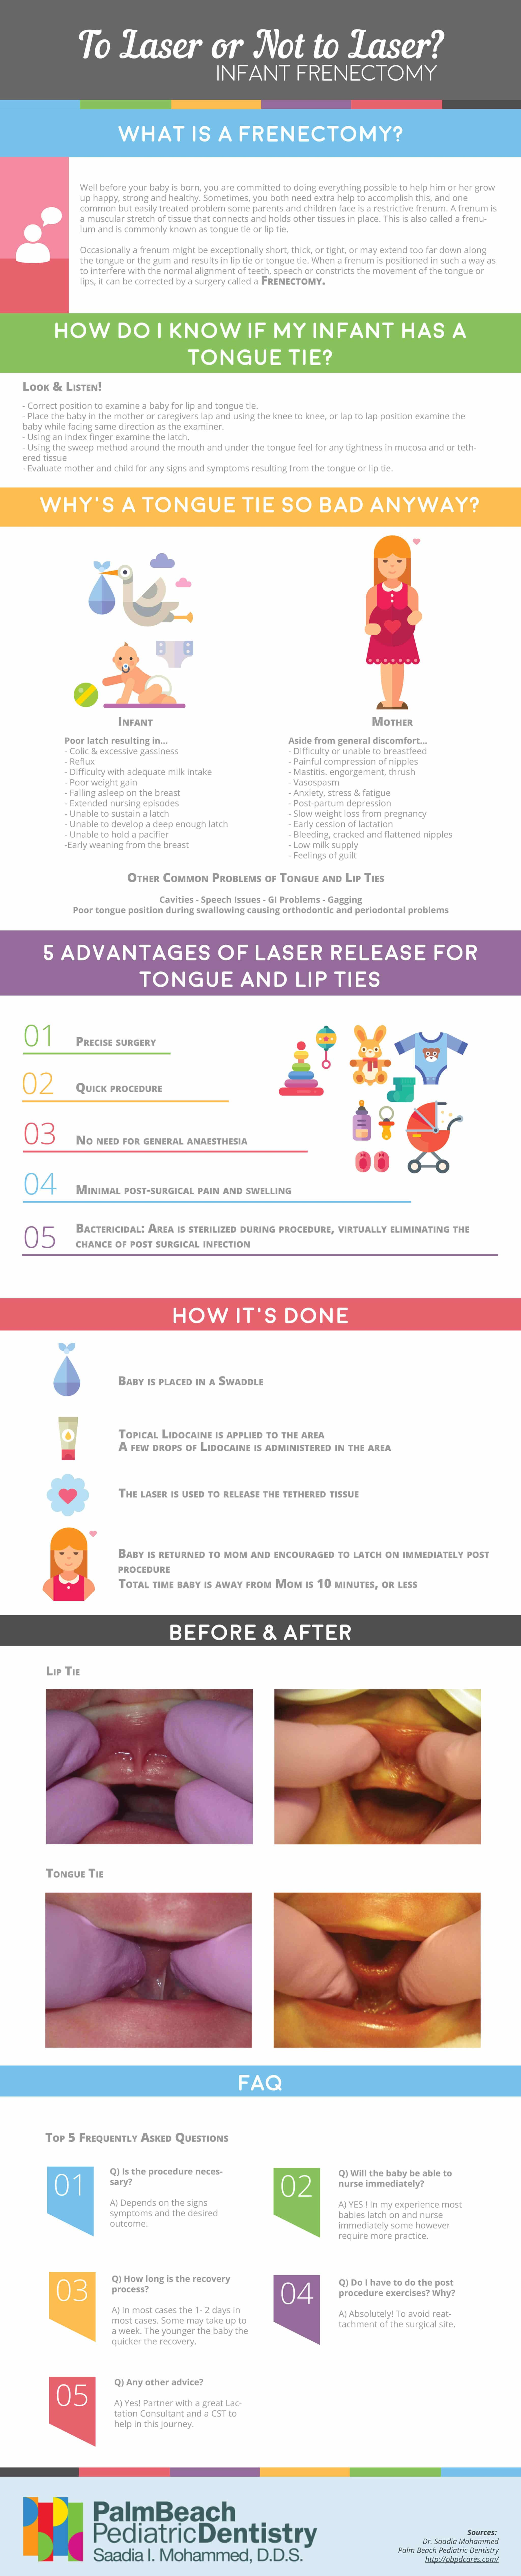 Palm Beach Pediatric Laser Frenectomy Infographic